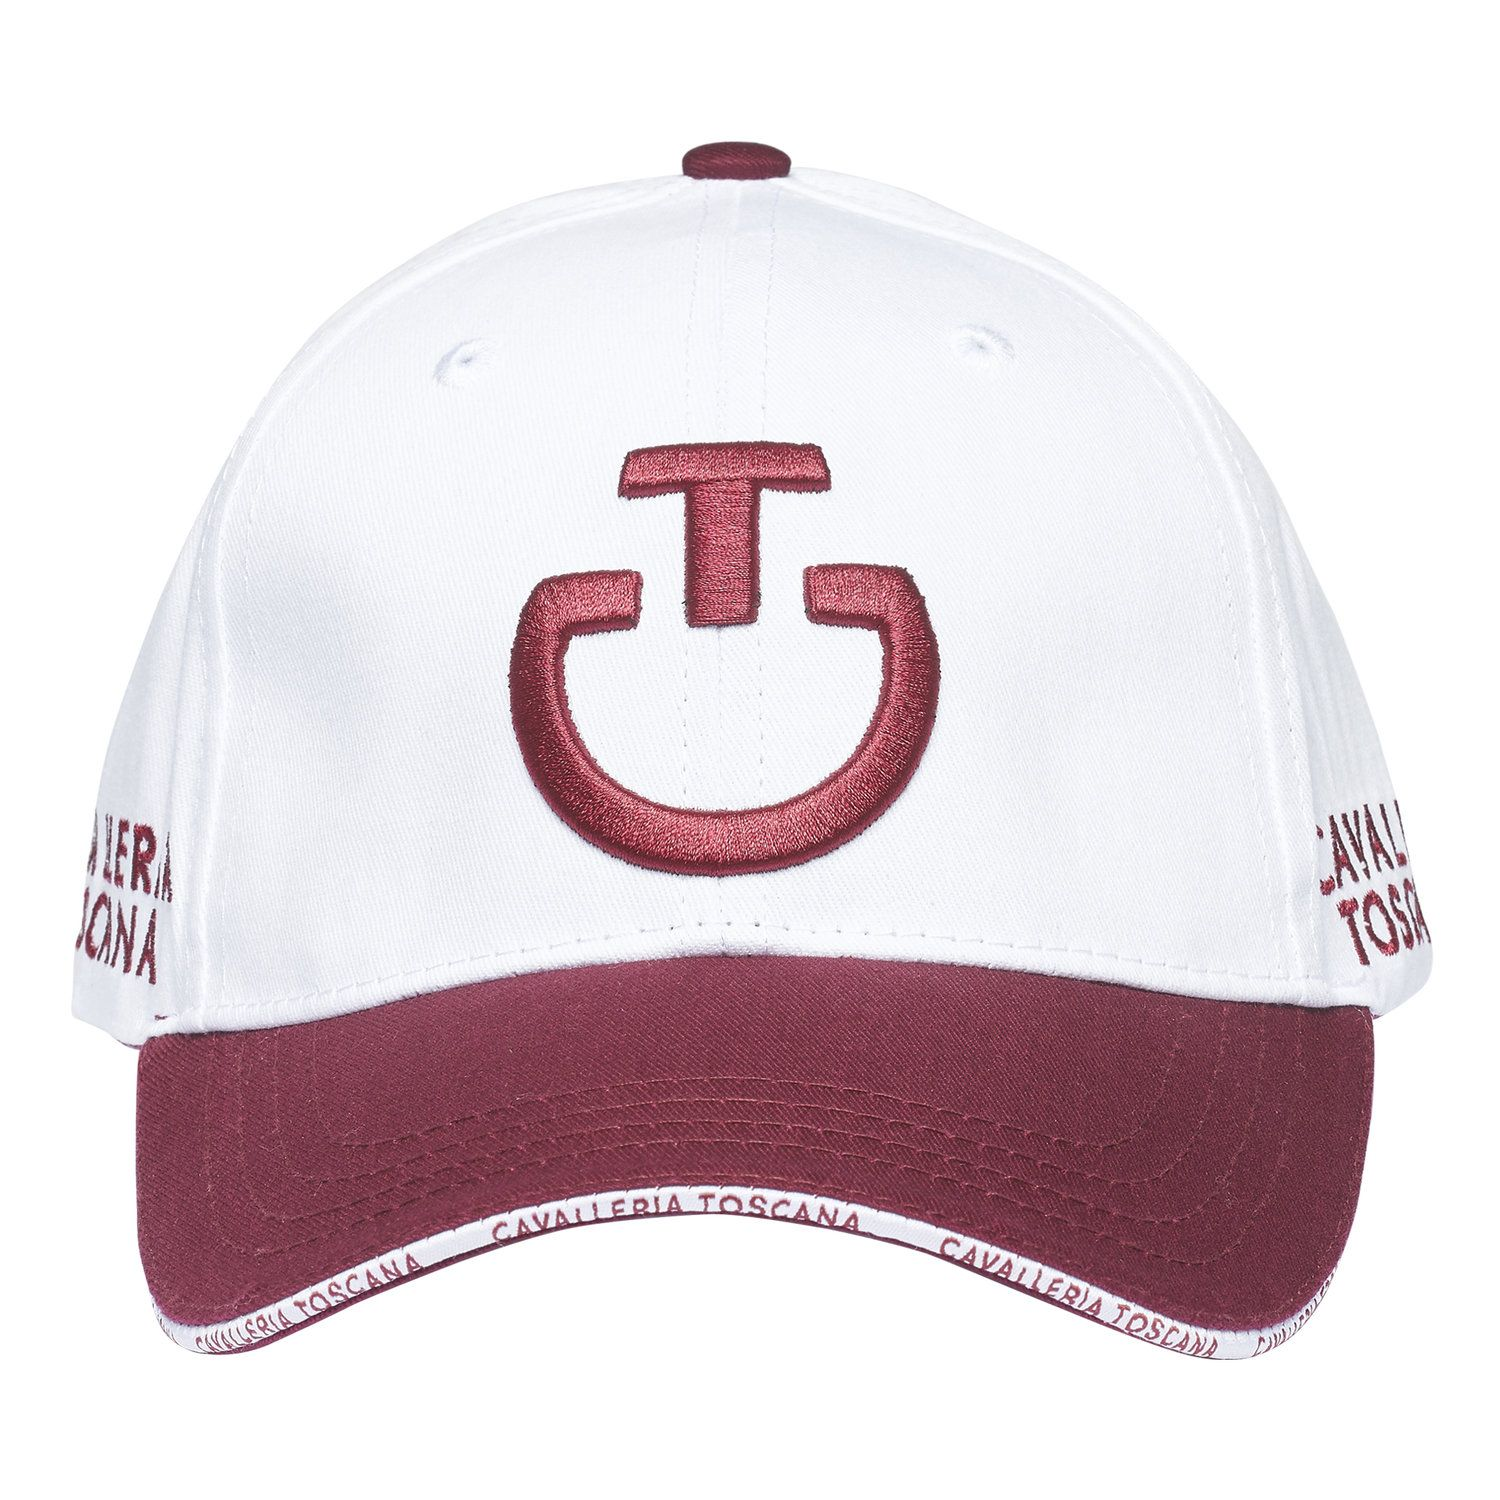 Contrasting logo and brim cap